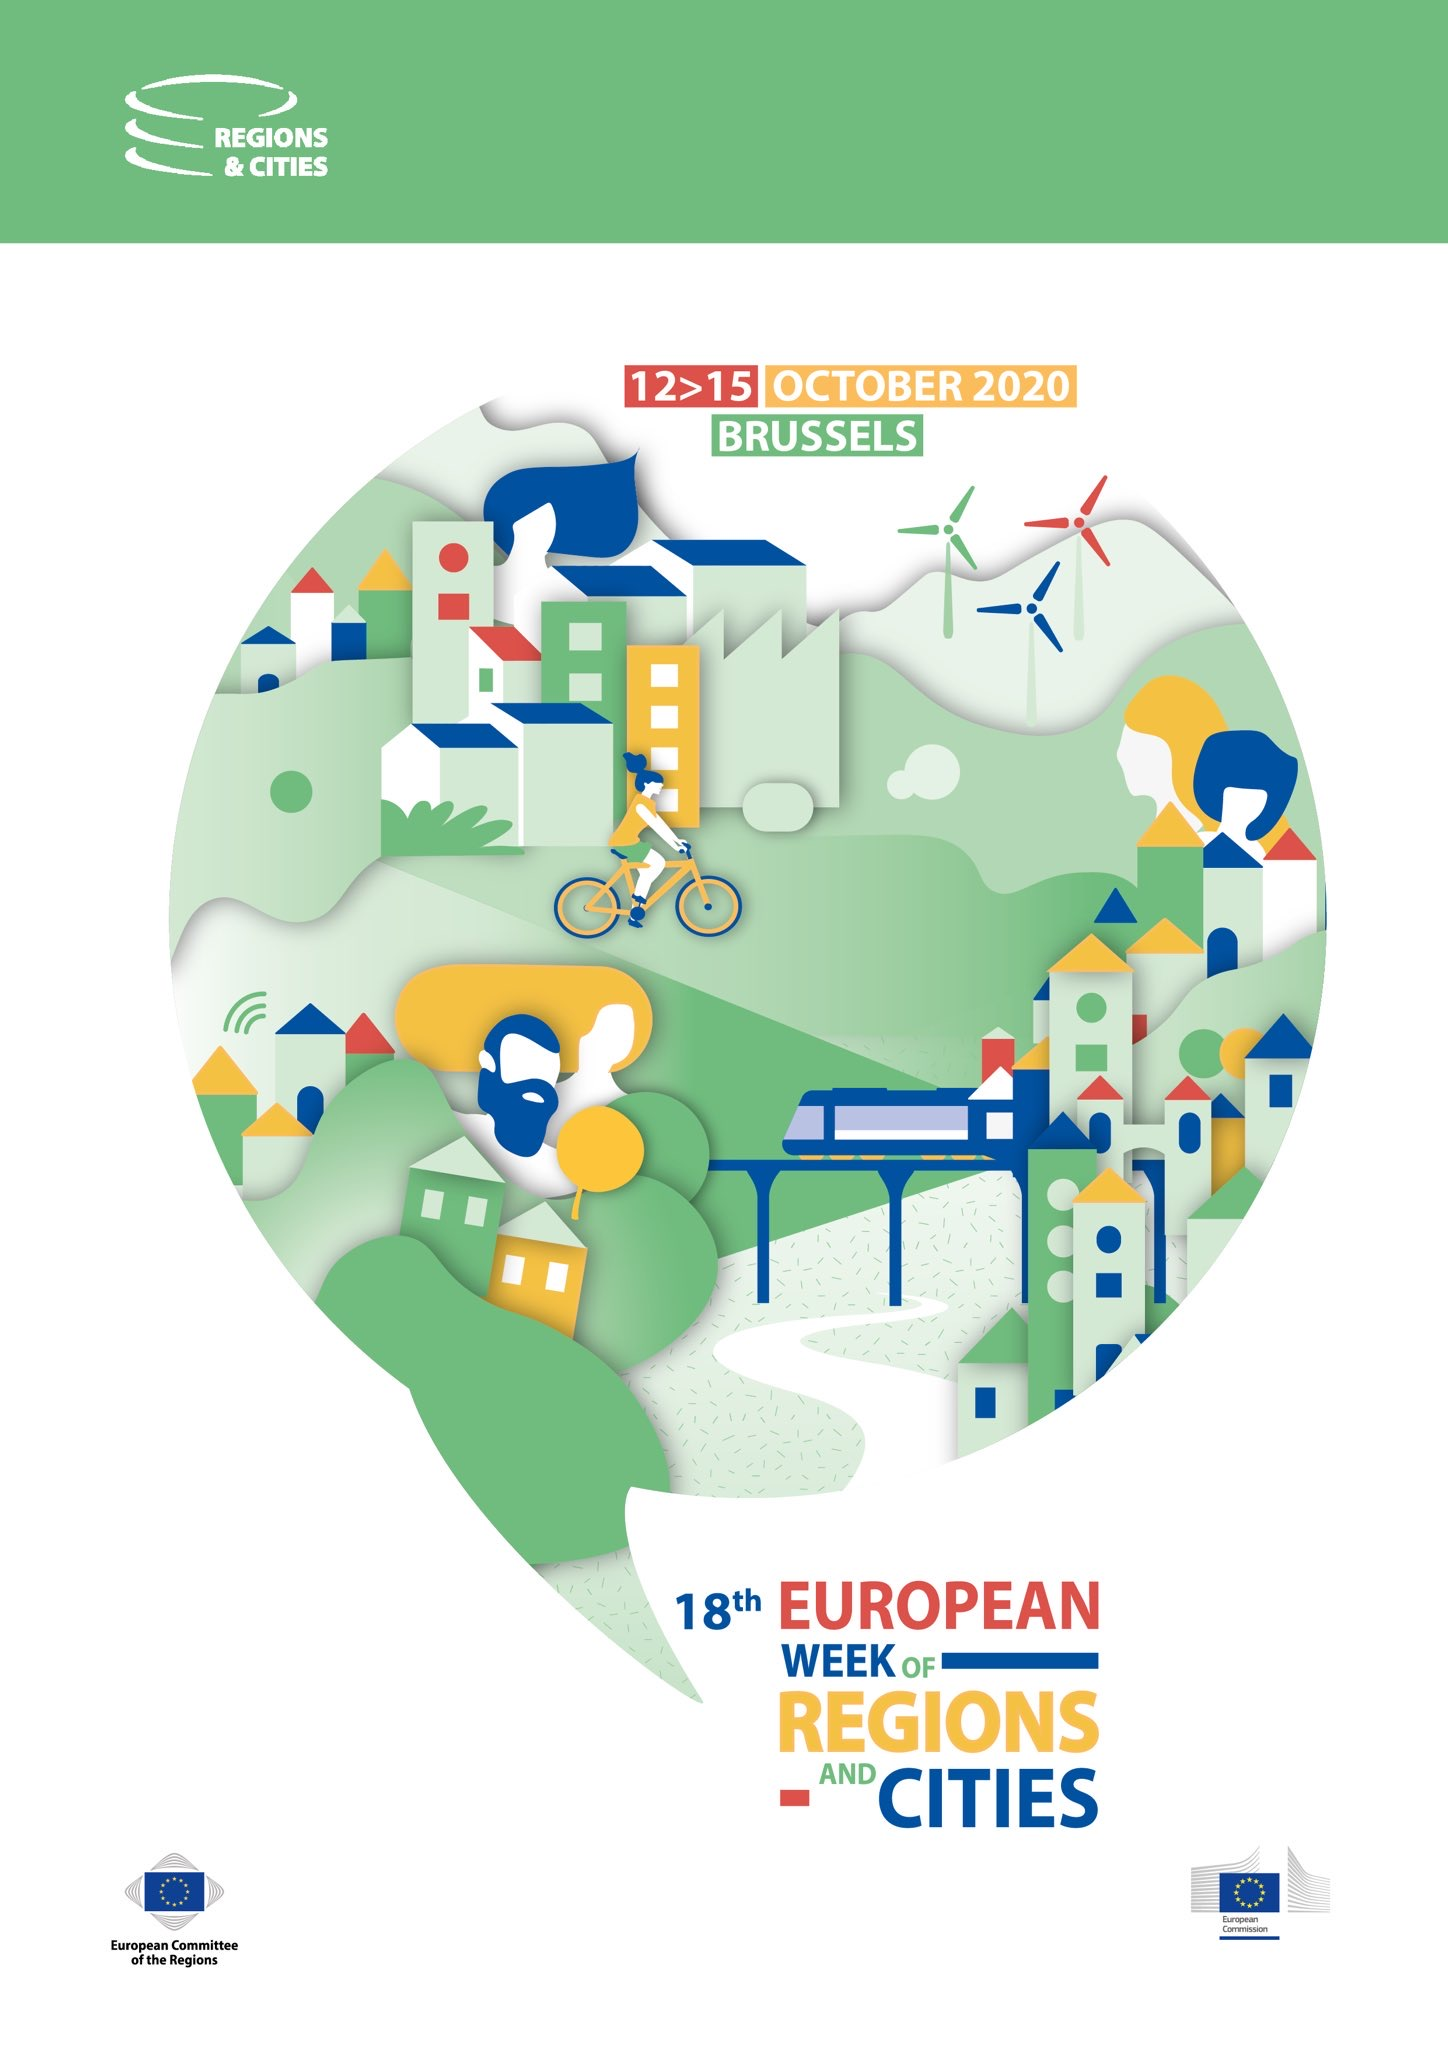 Start at Best - European Week of Regions and Cities